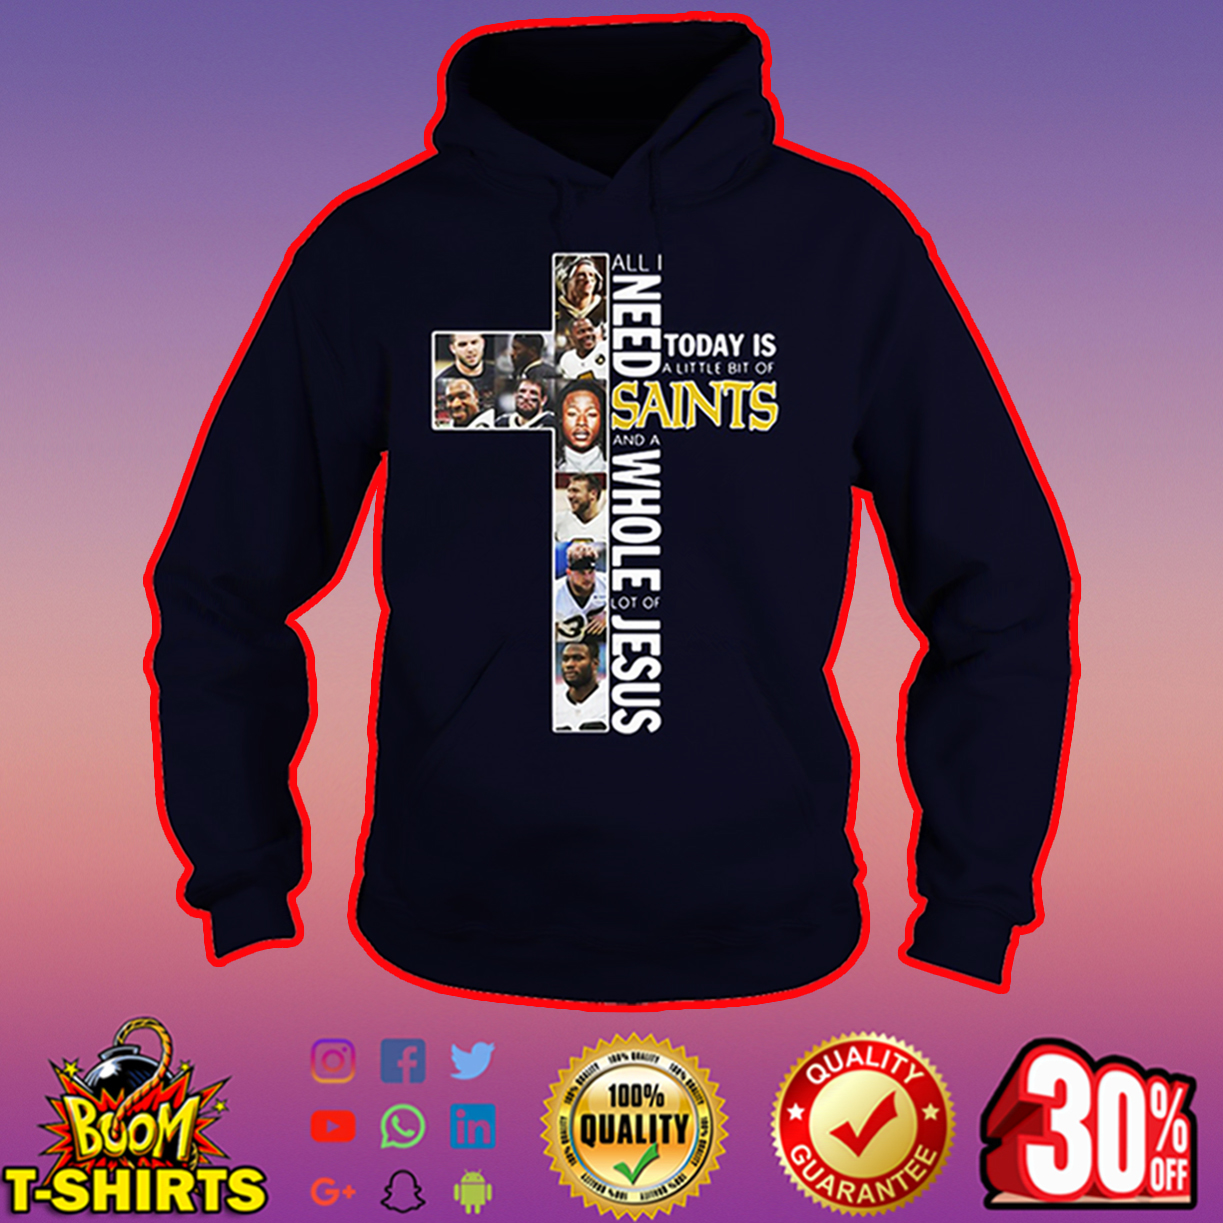 All I need today is a little bit of Saint and a whole lot of Jesus hoodie